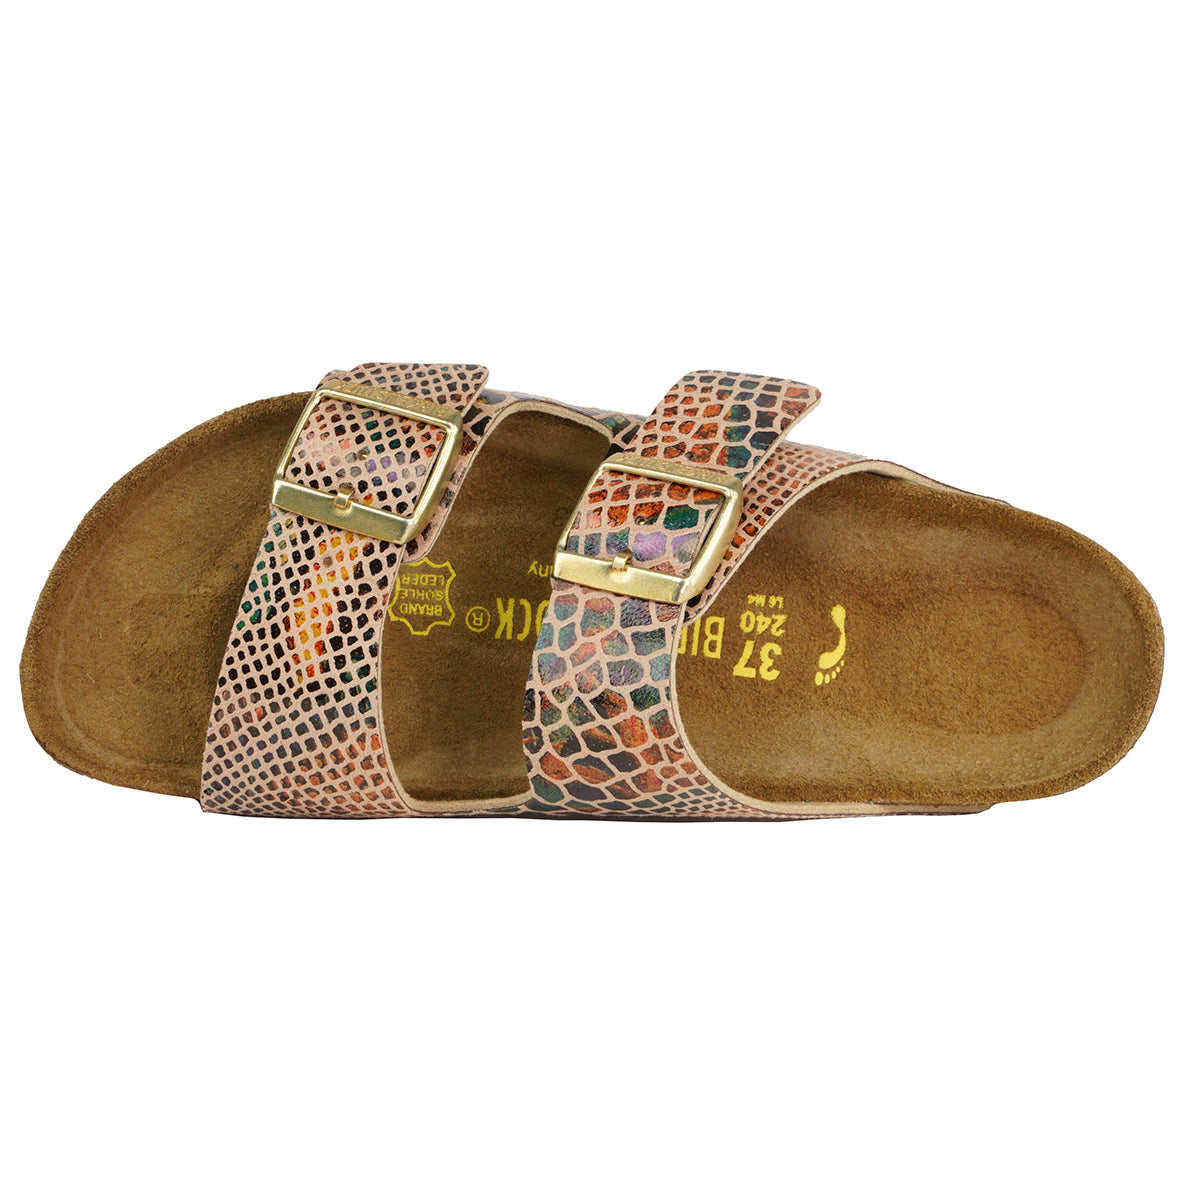 Birkenstock Arizona Sandals